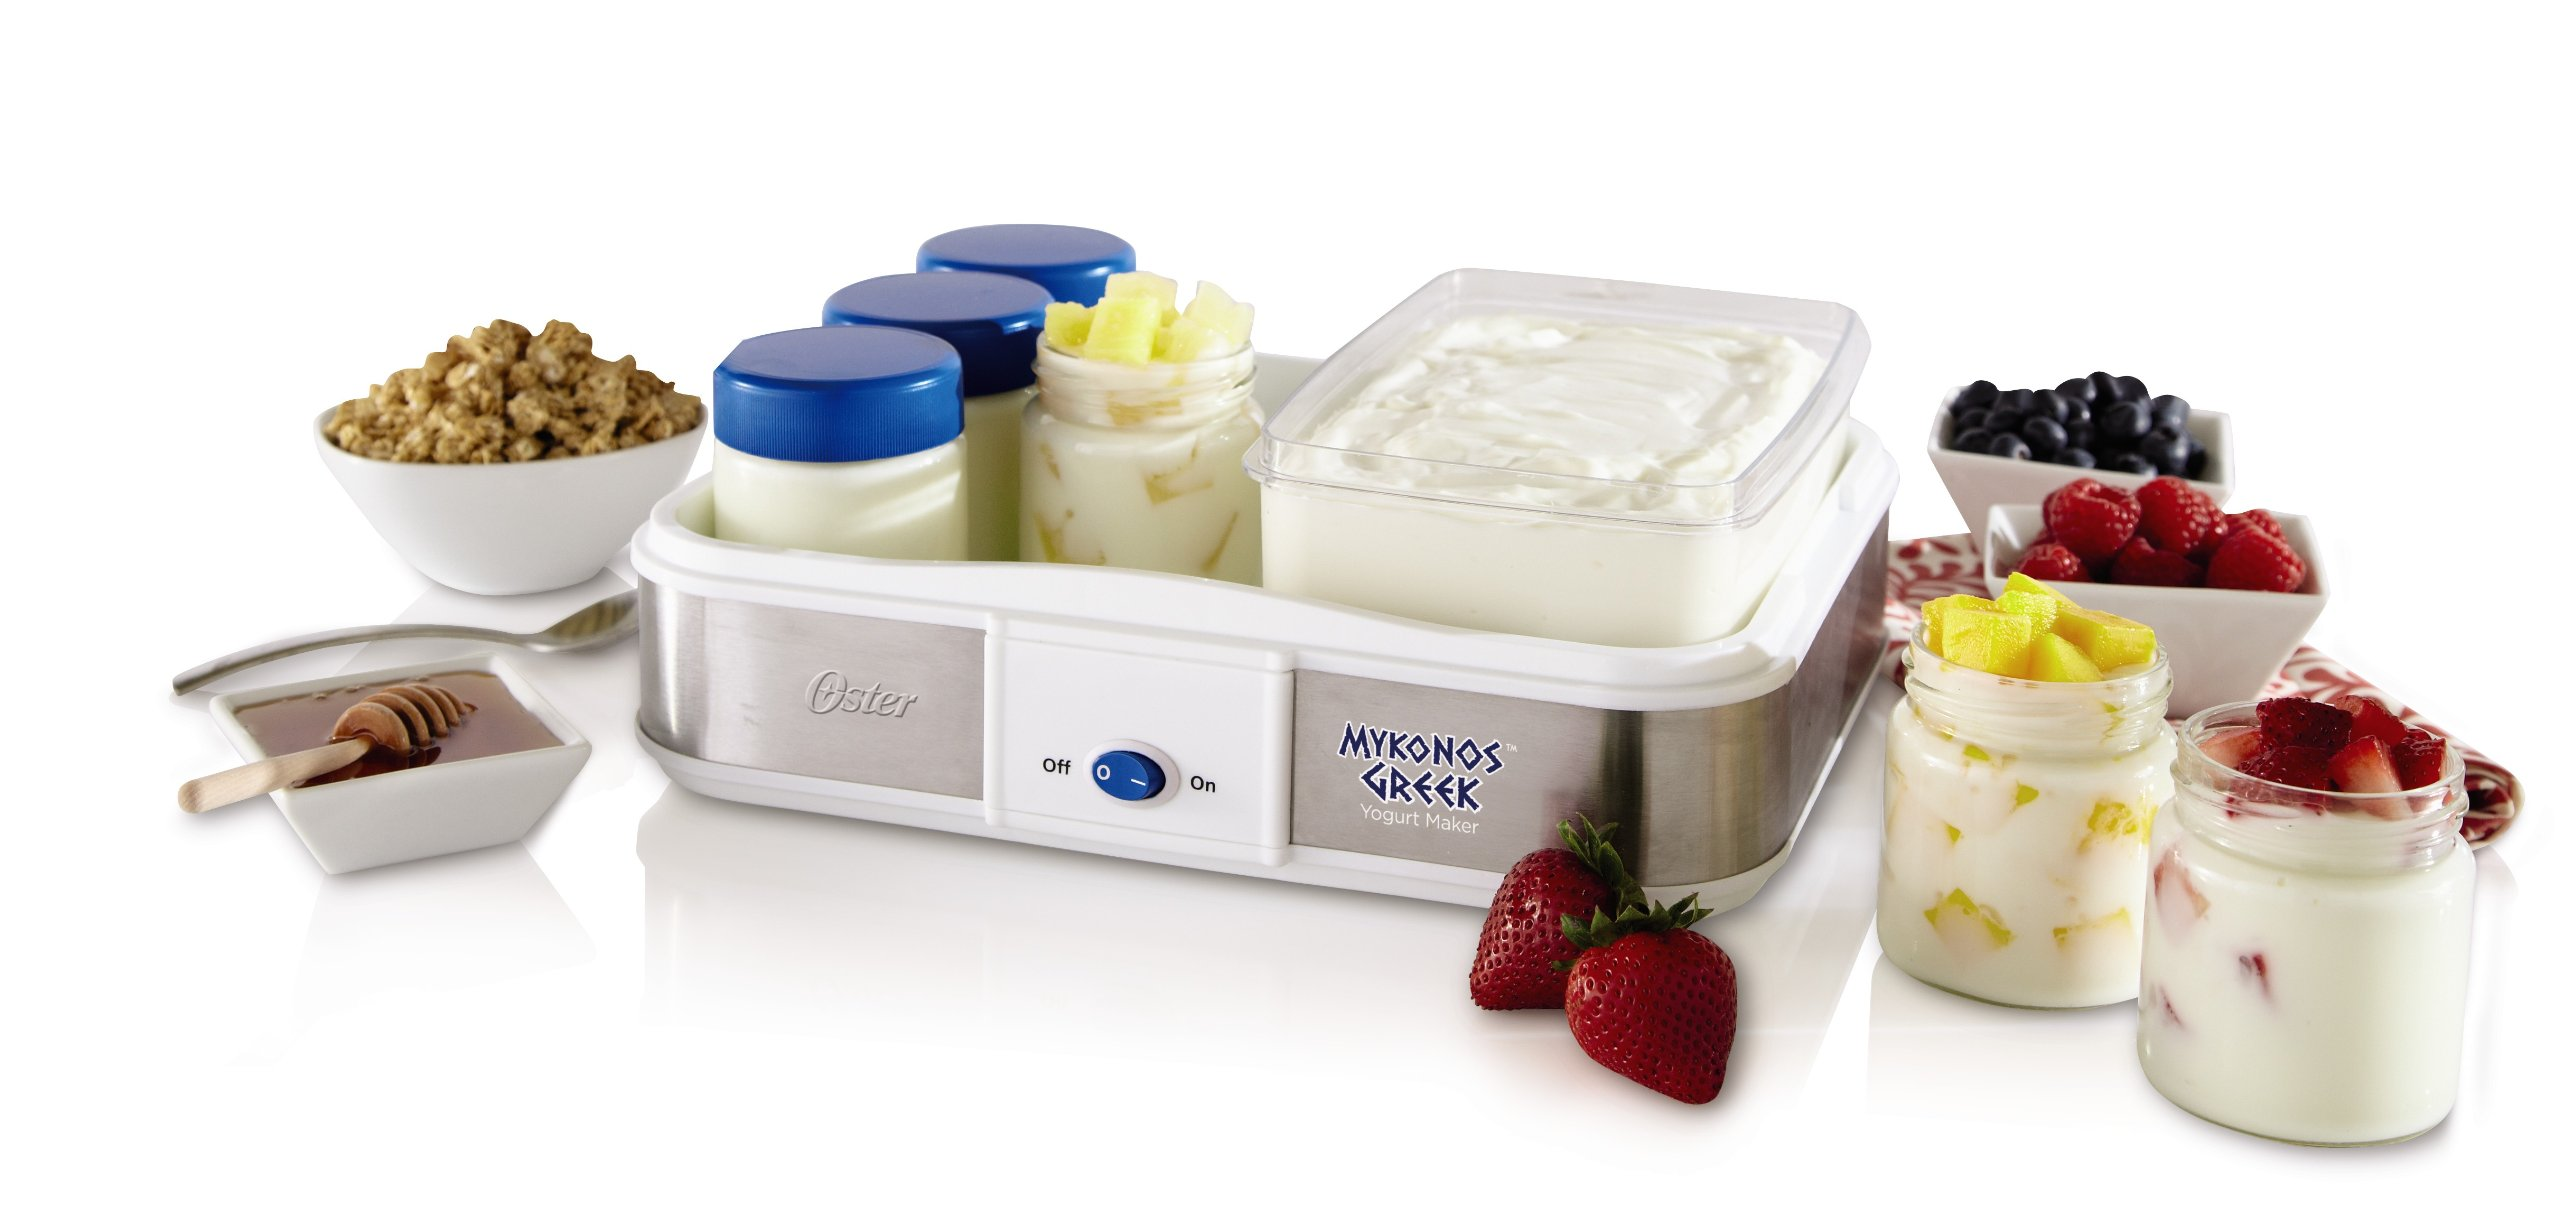 Oster CKSTYM1010 Mykonos Greek Manual Yogurt Maker, 2-Quart by Oster